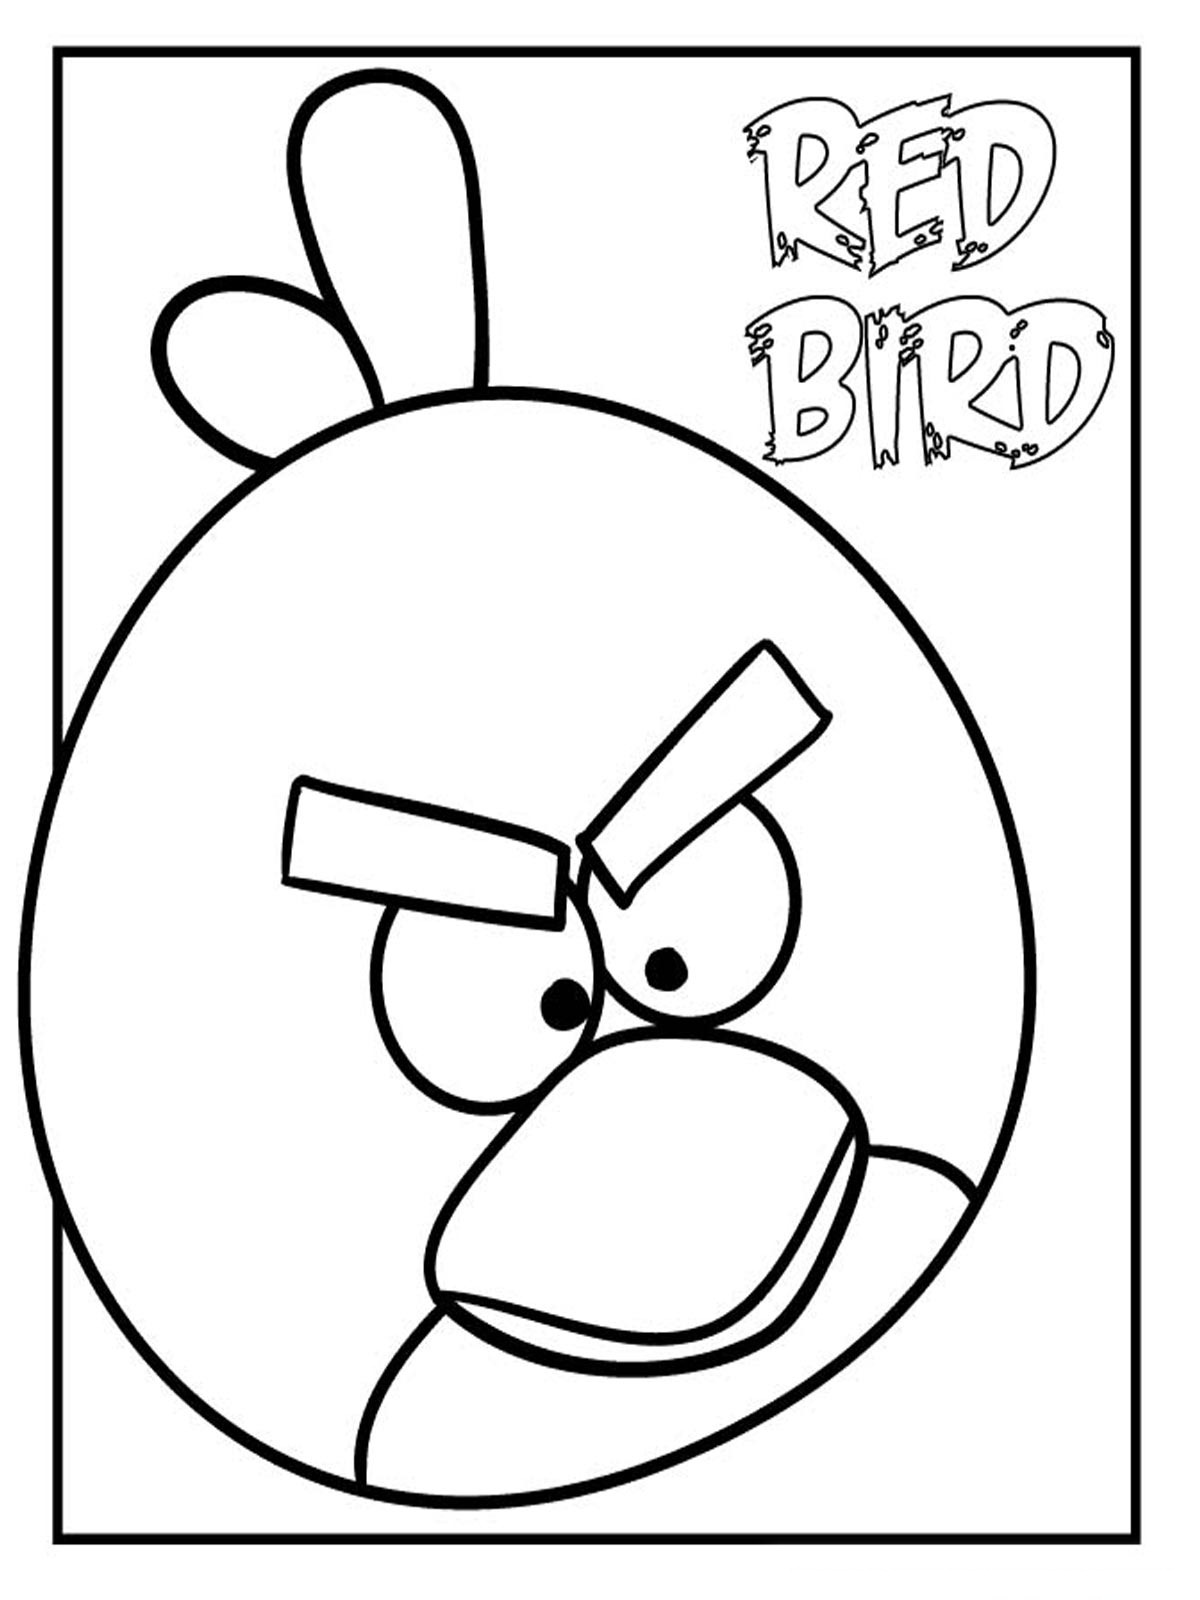 Angry Birds: Colouring Pages that You Can Use as Templates